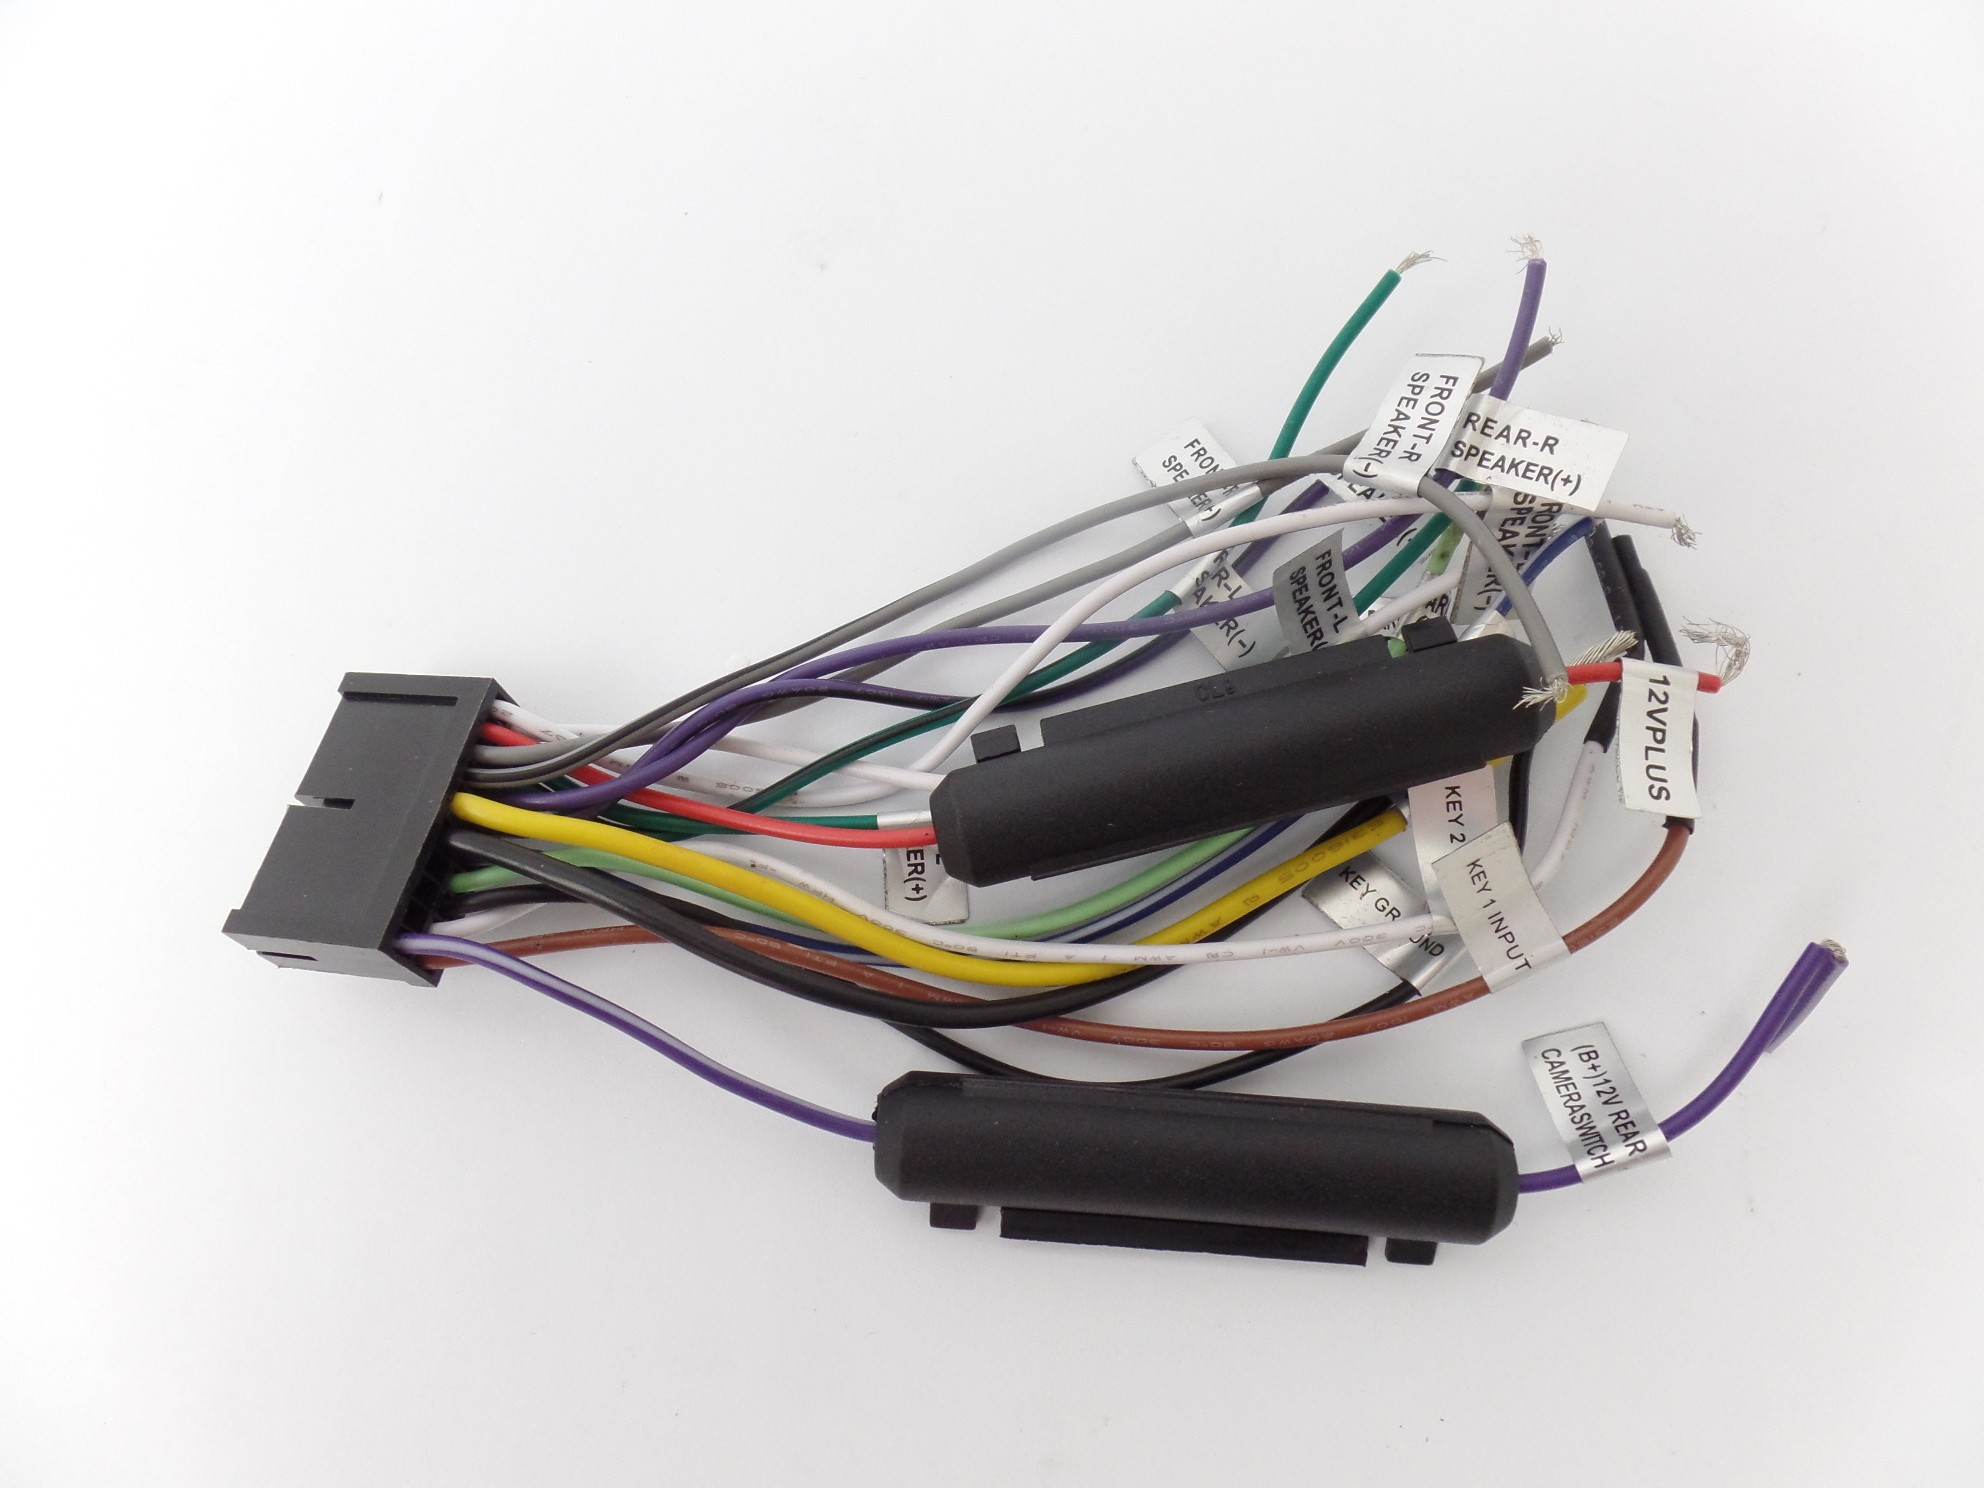 Wiring Harness Video Audio Input Output Wires for Boss BV9976B Car ReceiverAve Electronics Ave Electronics